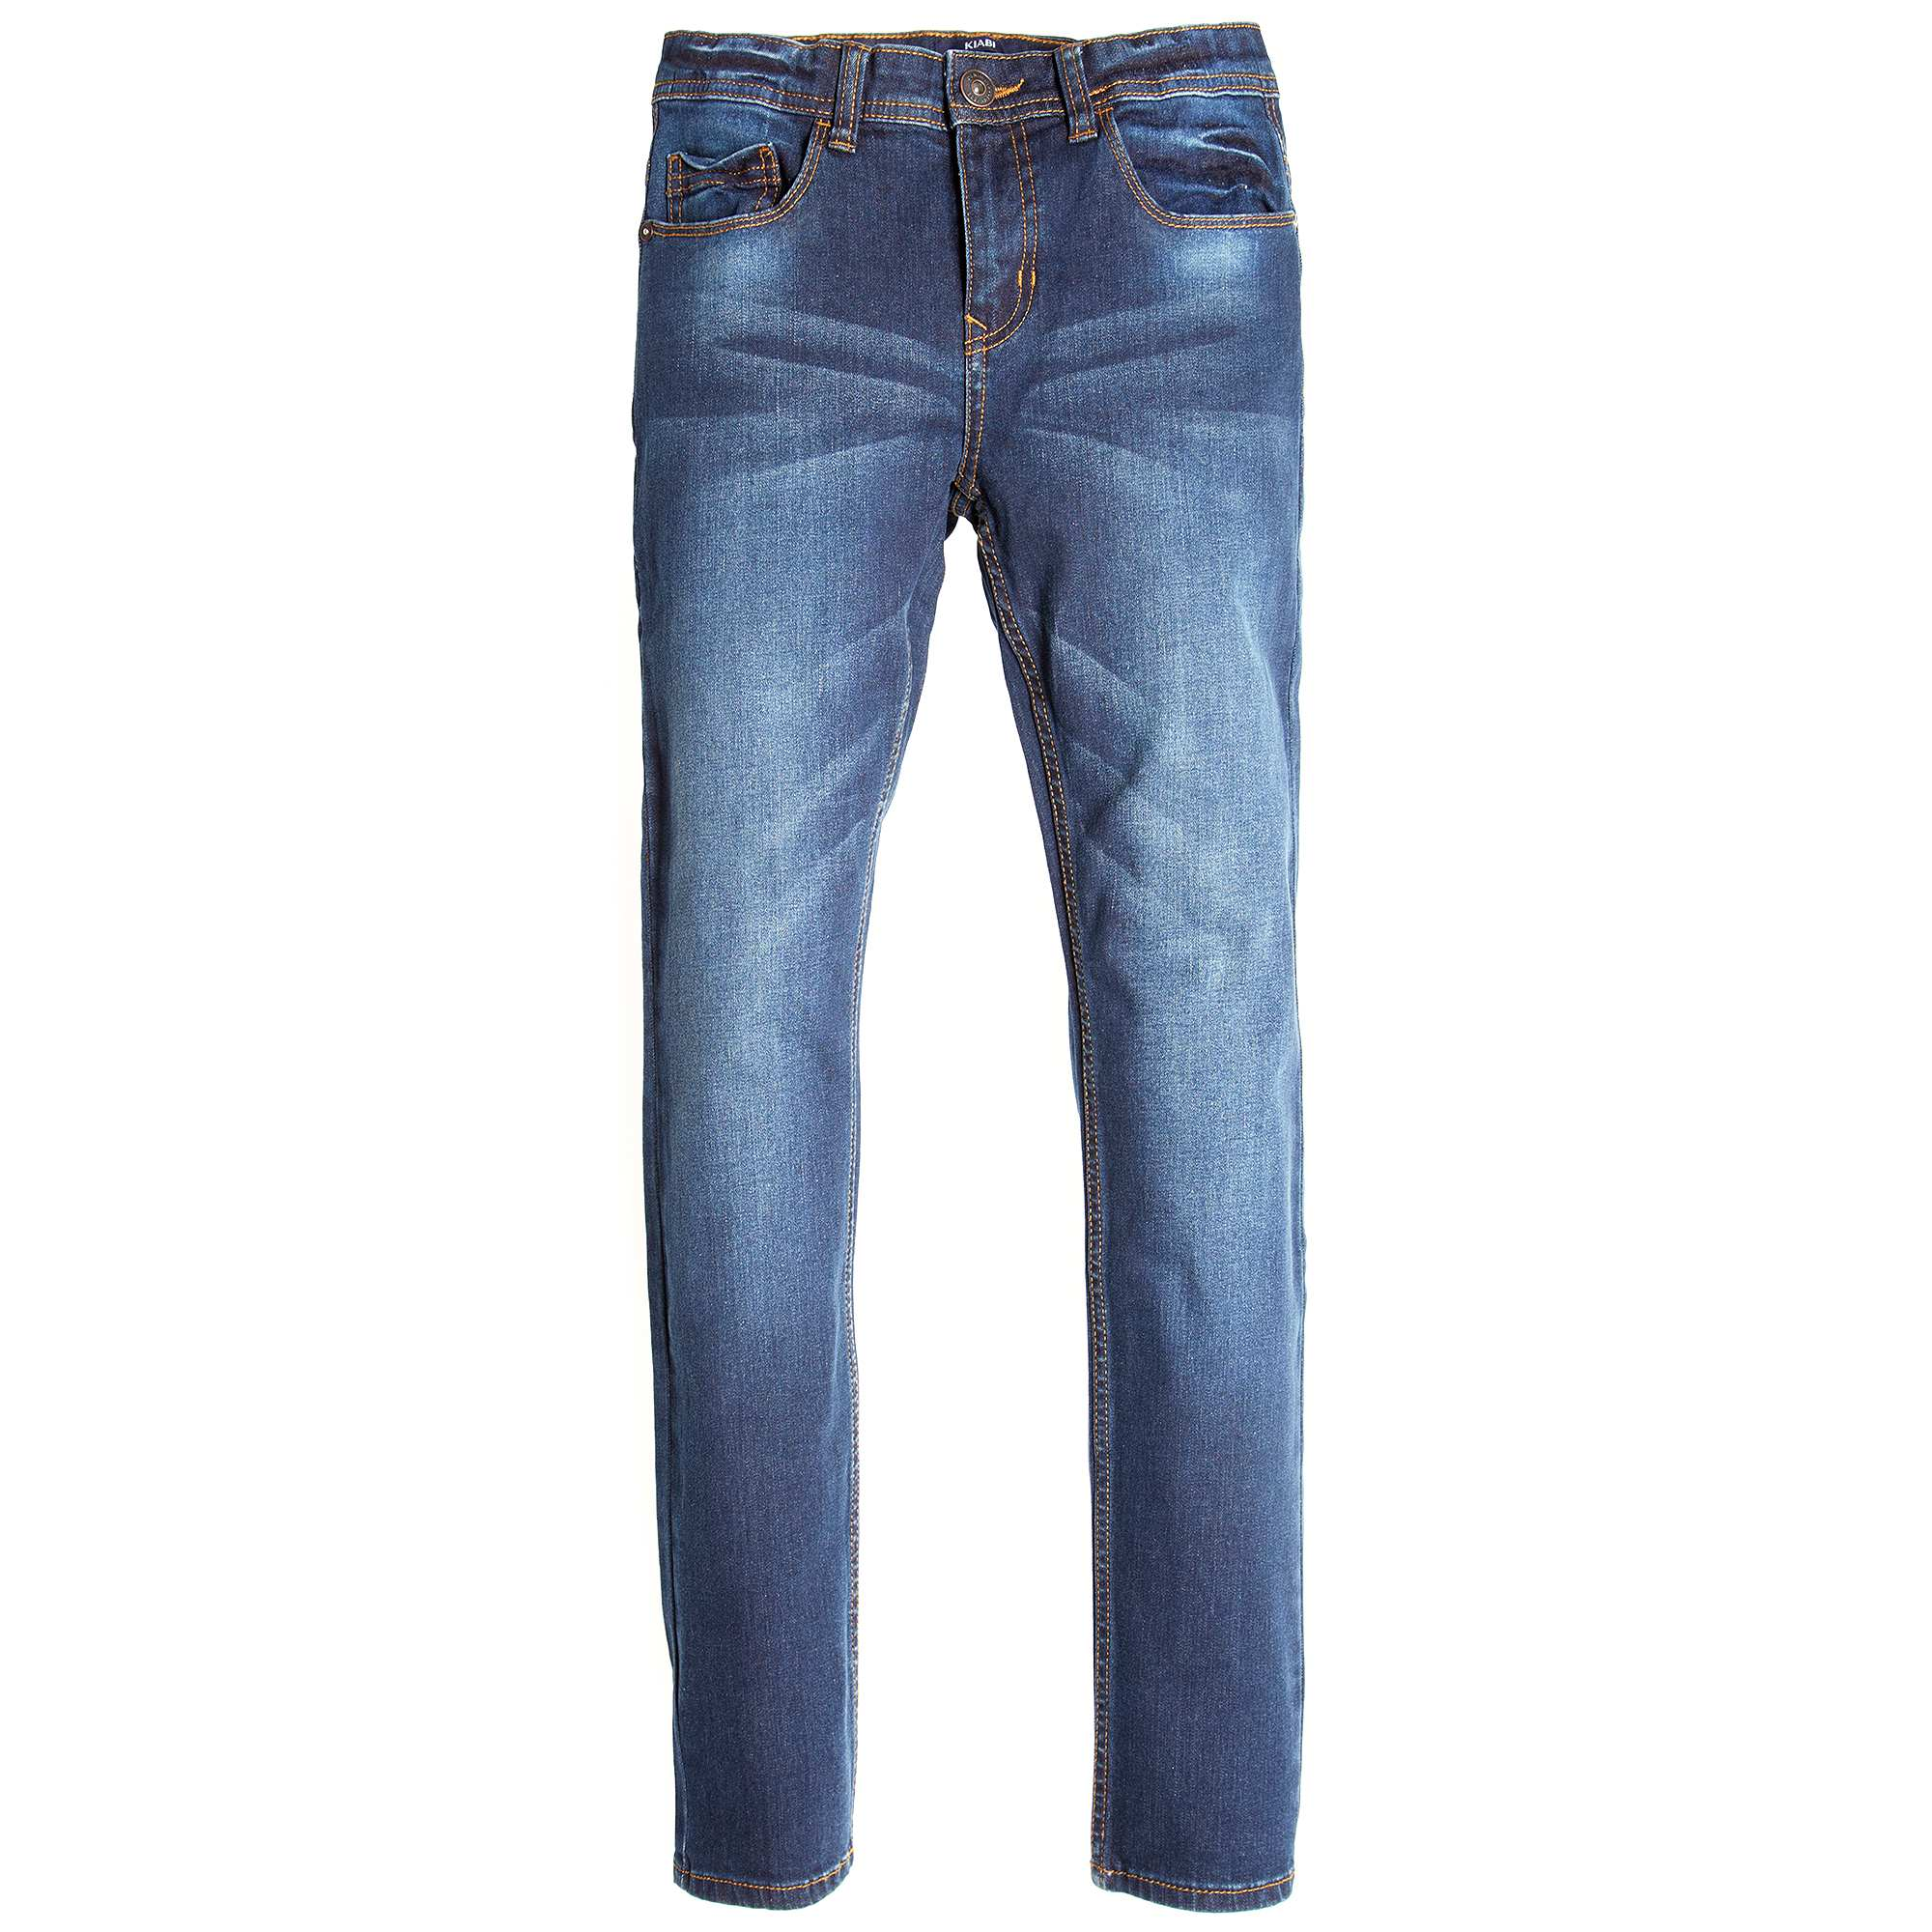 Shop fashion 15 dollar jeans sale online at Twinkledeals. Search the latest 15 dollar jeans with affordable price and free shipping available worldwide.